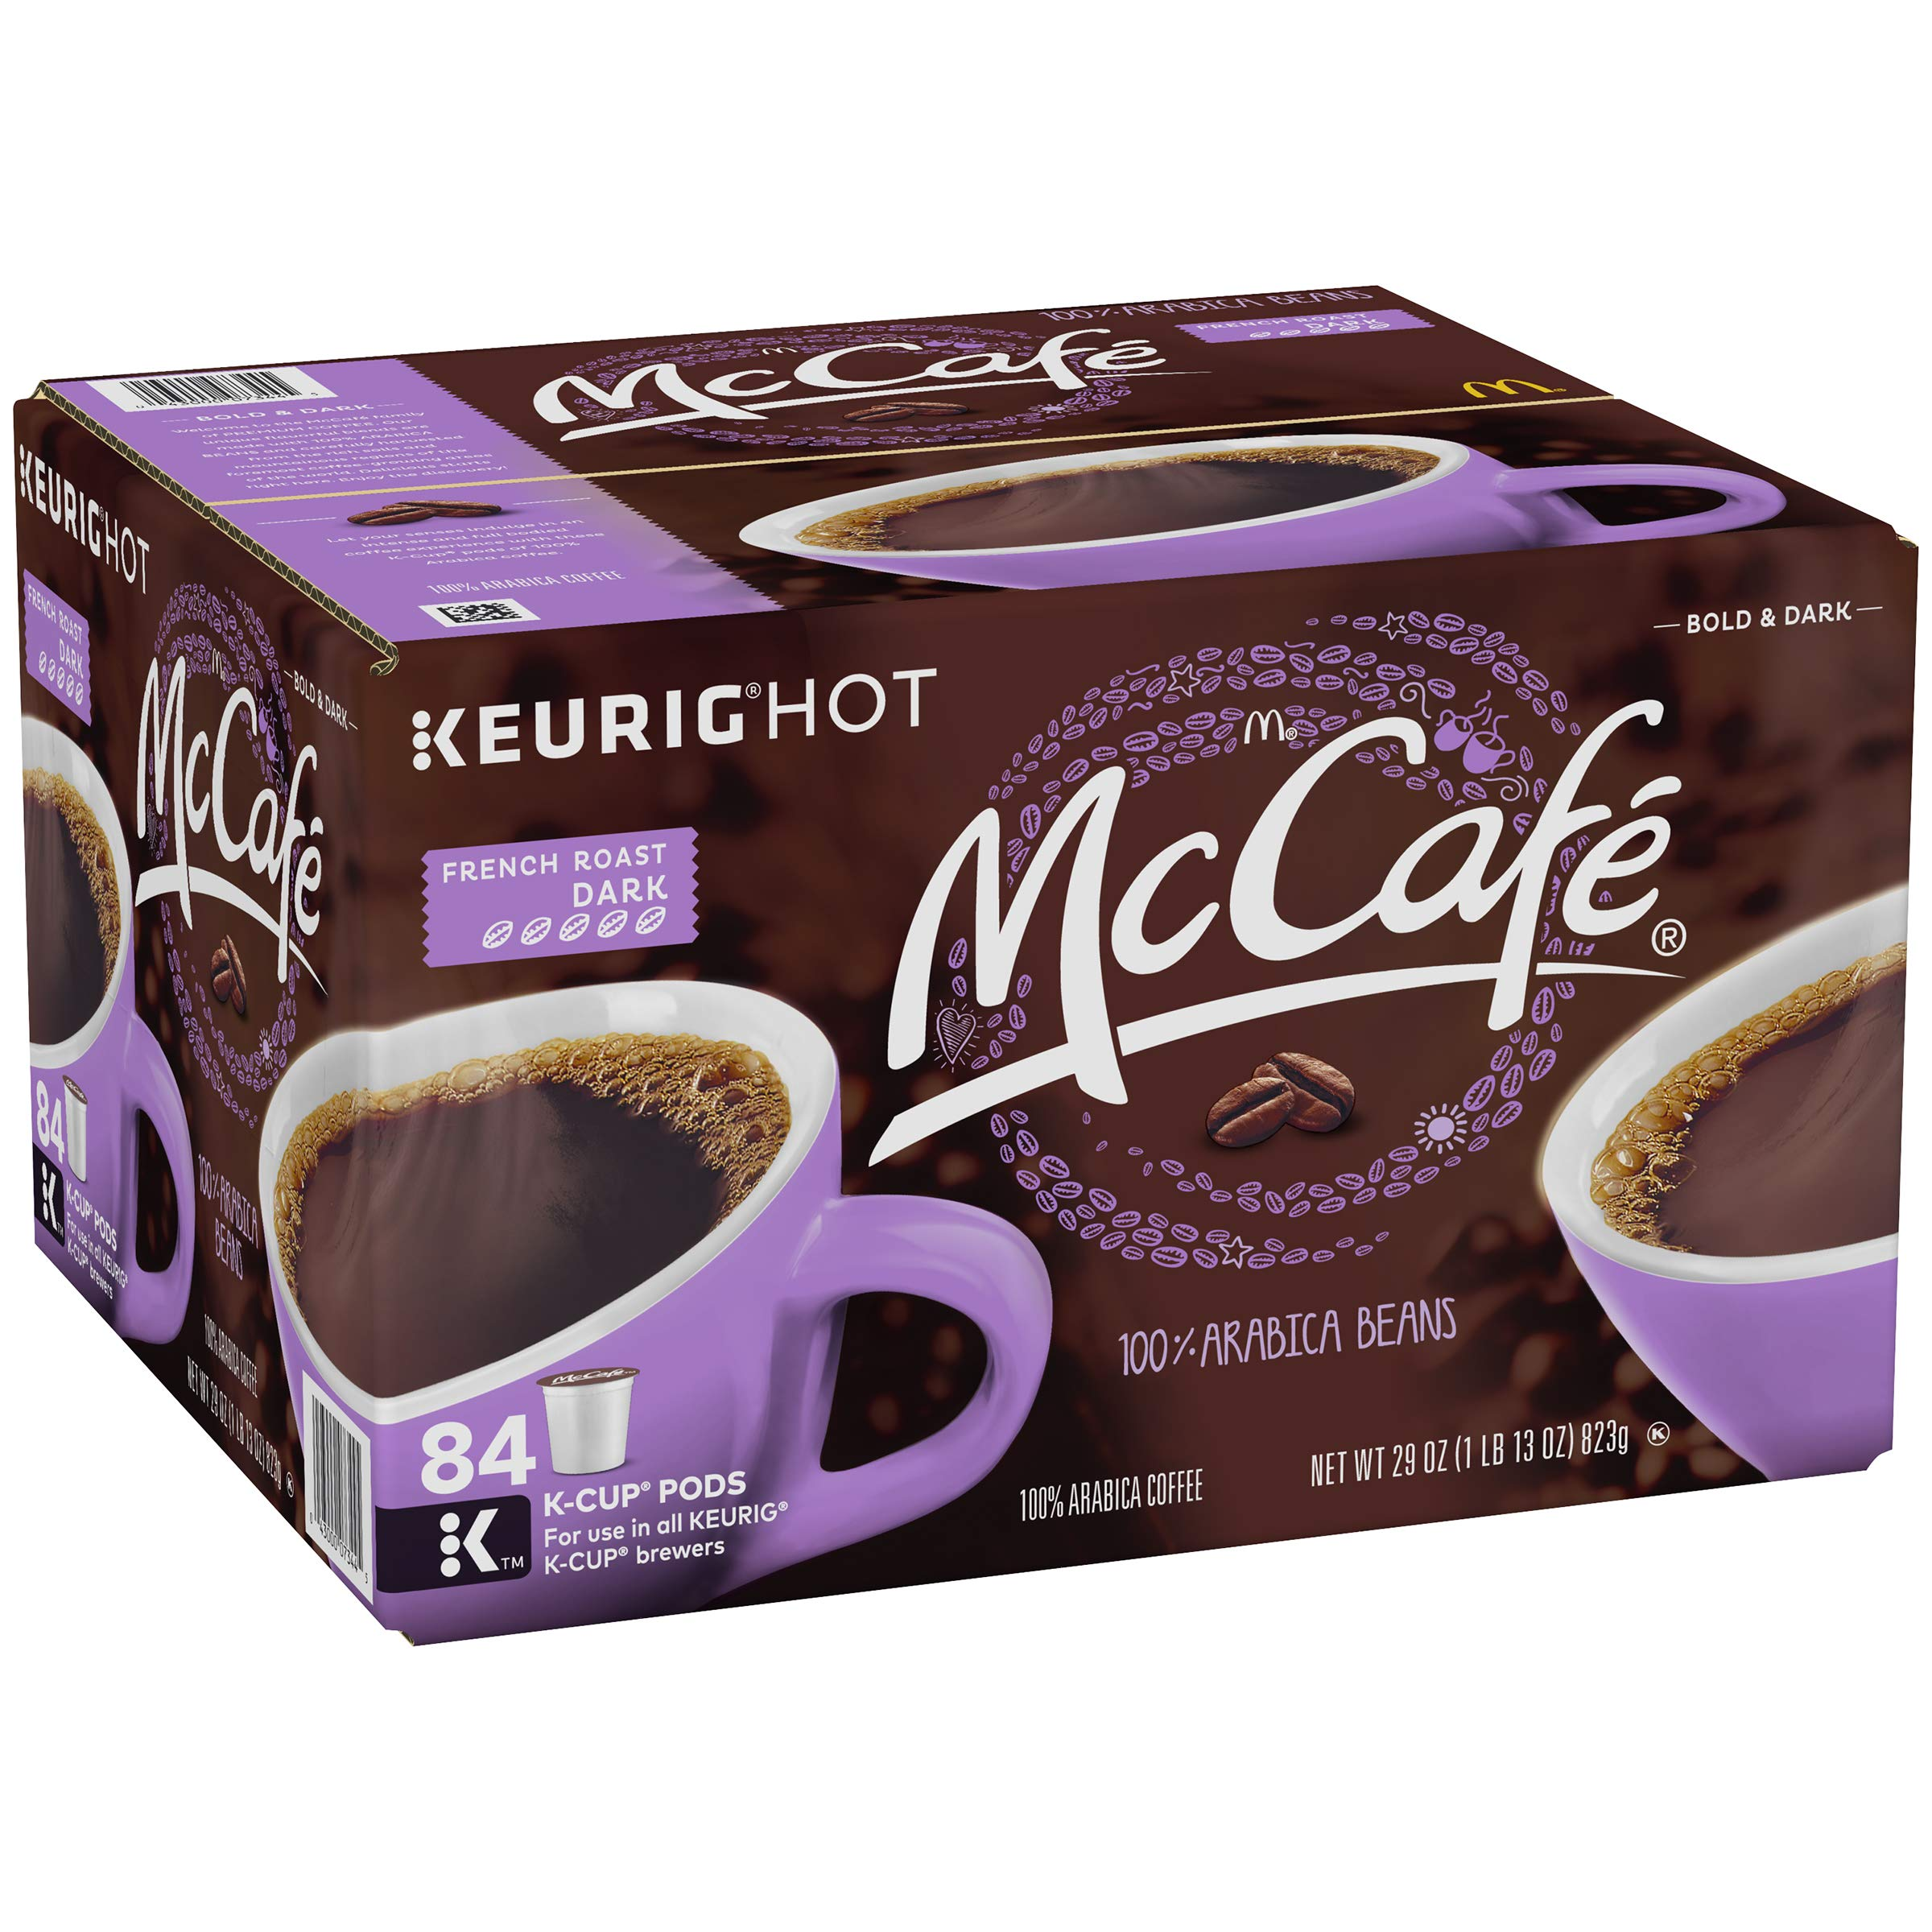 McCafe French Roast Dark K-Cup Coffee Pods, 84 Count